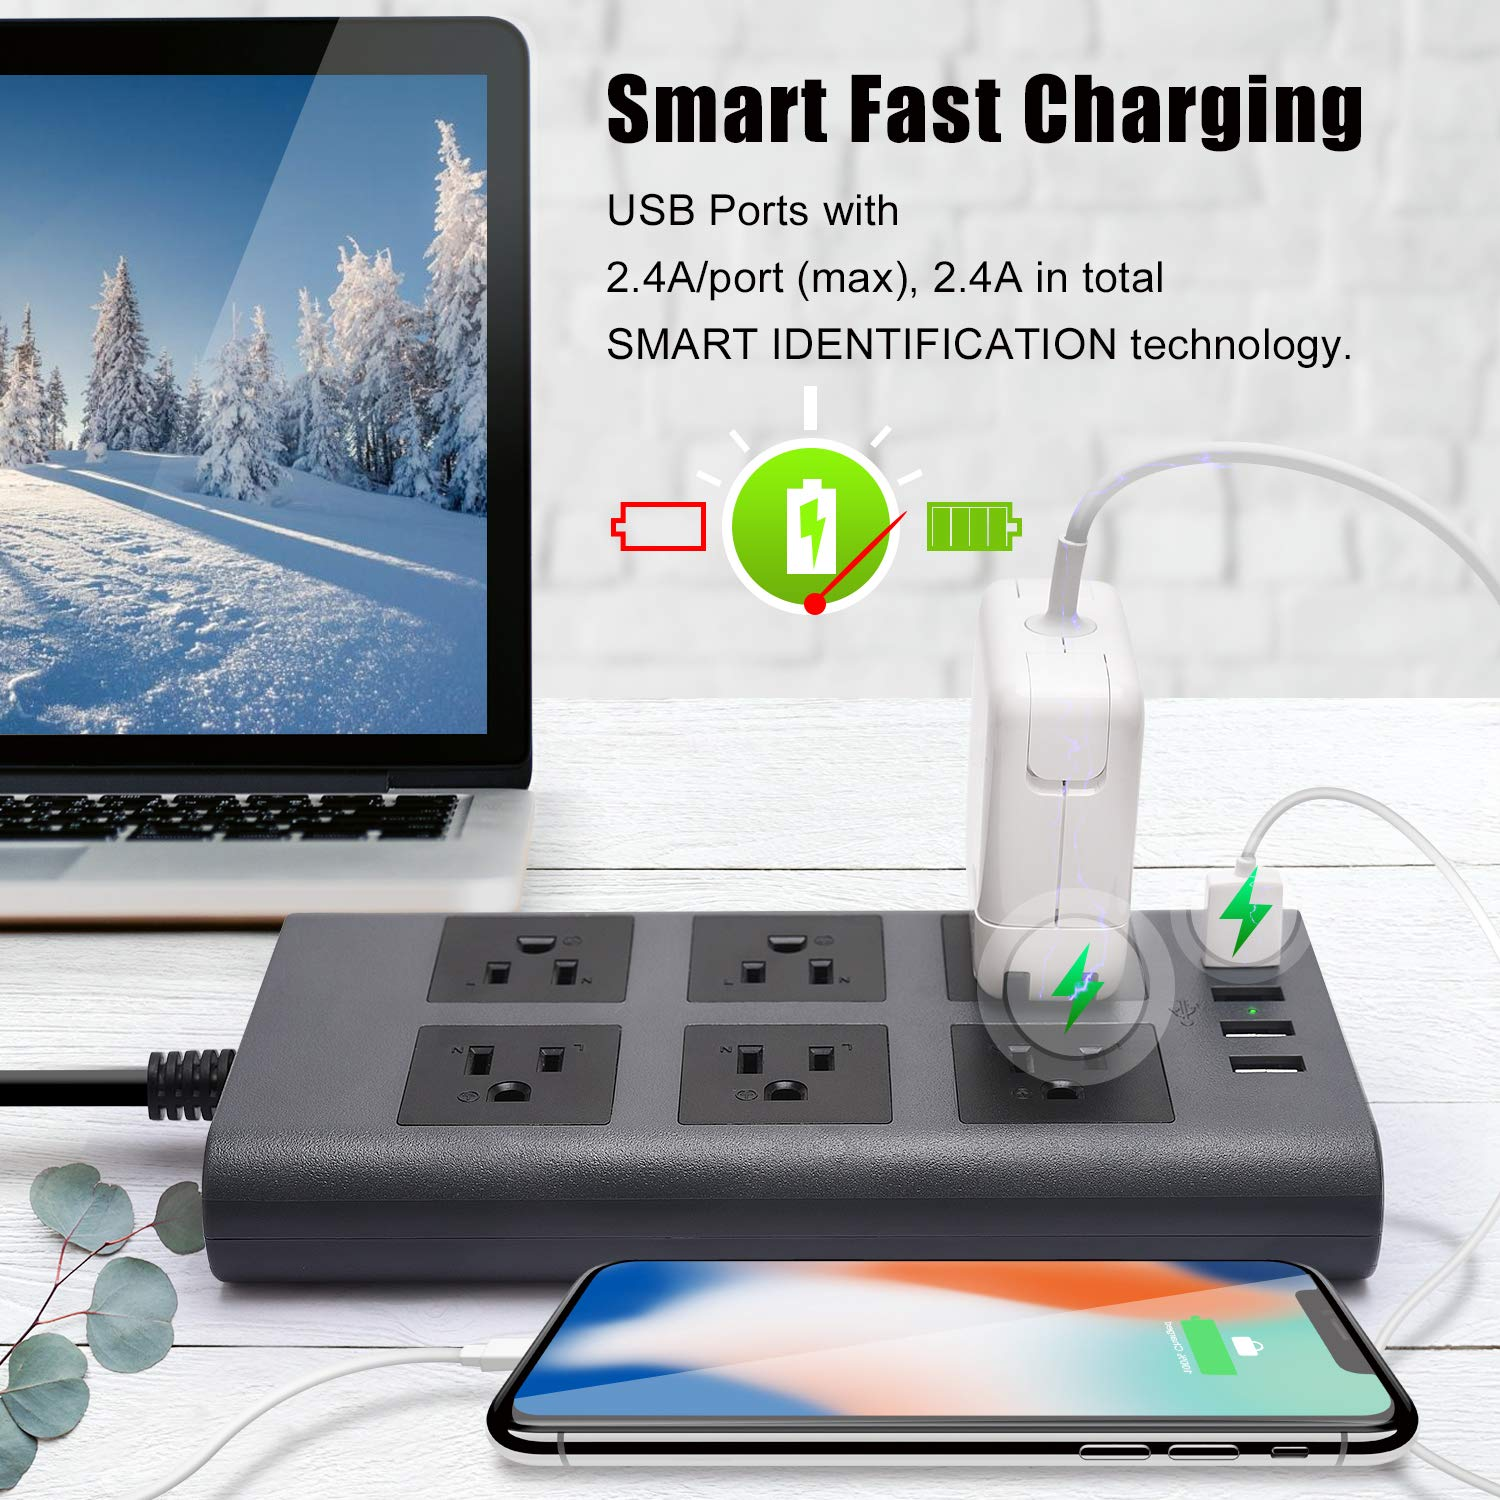 Surge Protector Power Strip 9.8ft Extension Cord SUPERDANNY Fire-Proof 1080J Flat Plug with A Hook /& Loop Fastener as Bonus 6 Outlets and 4 USB Fast Charger for iPhone iPad Home Office Grey Balck